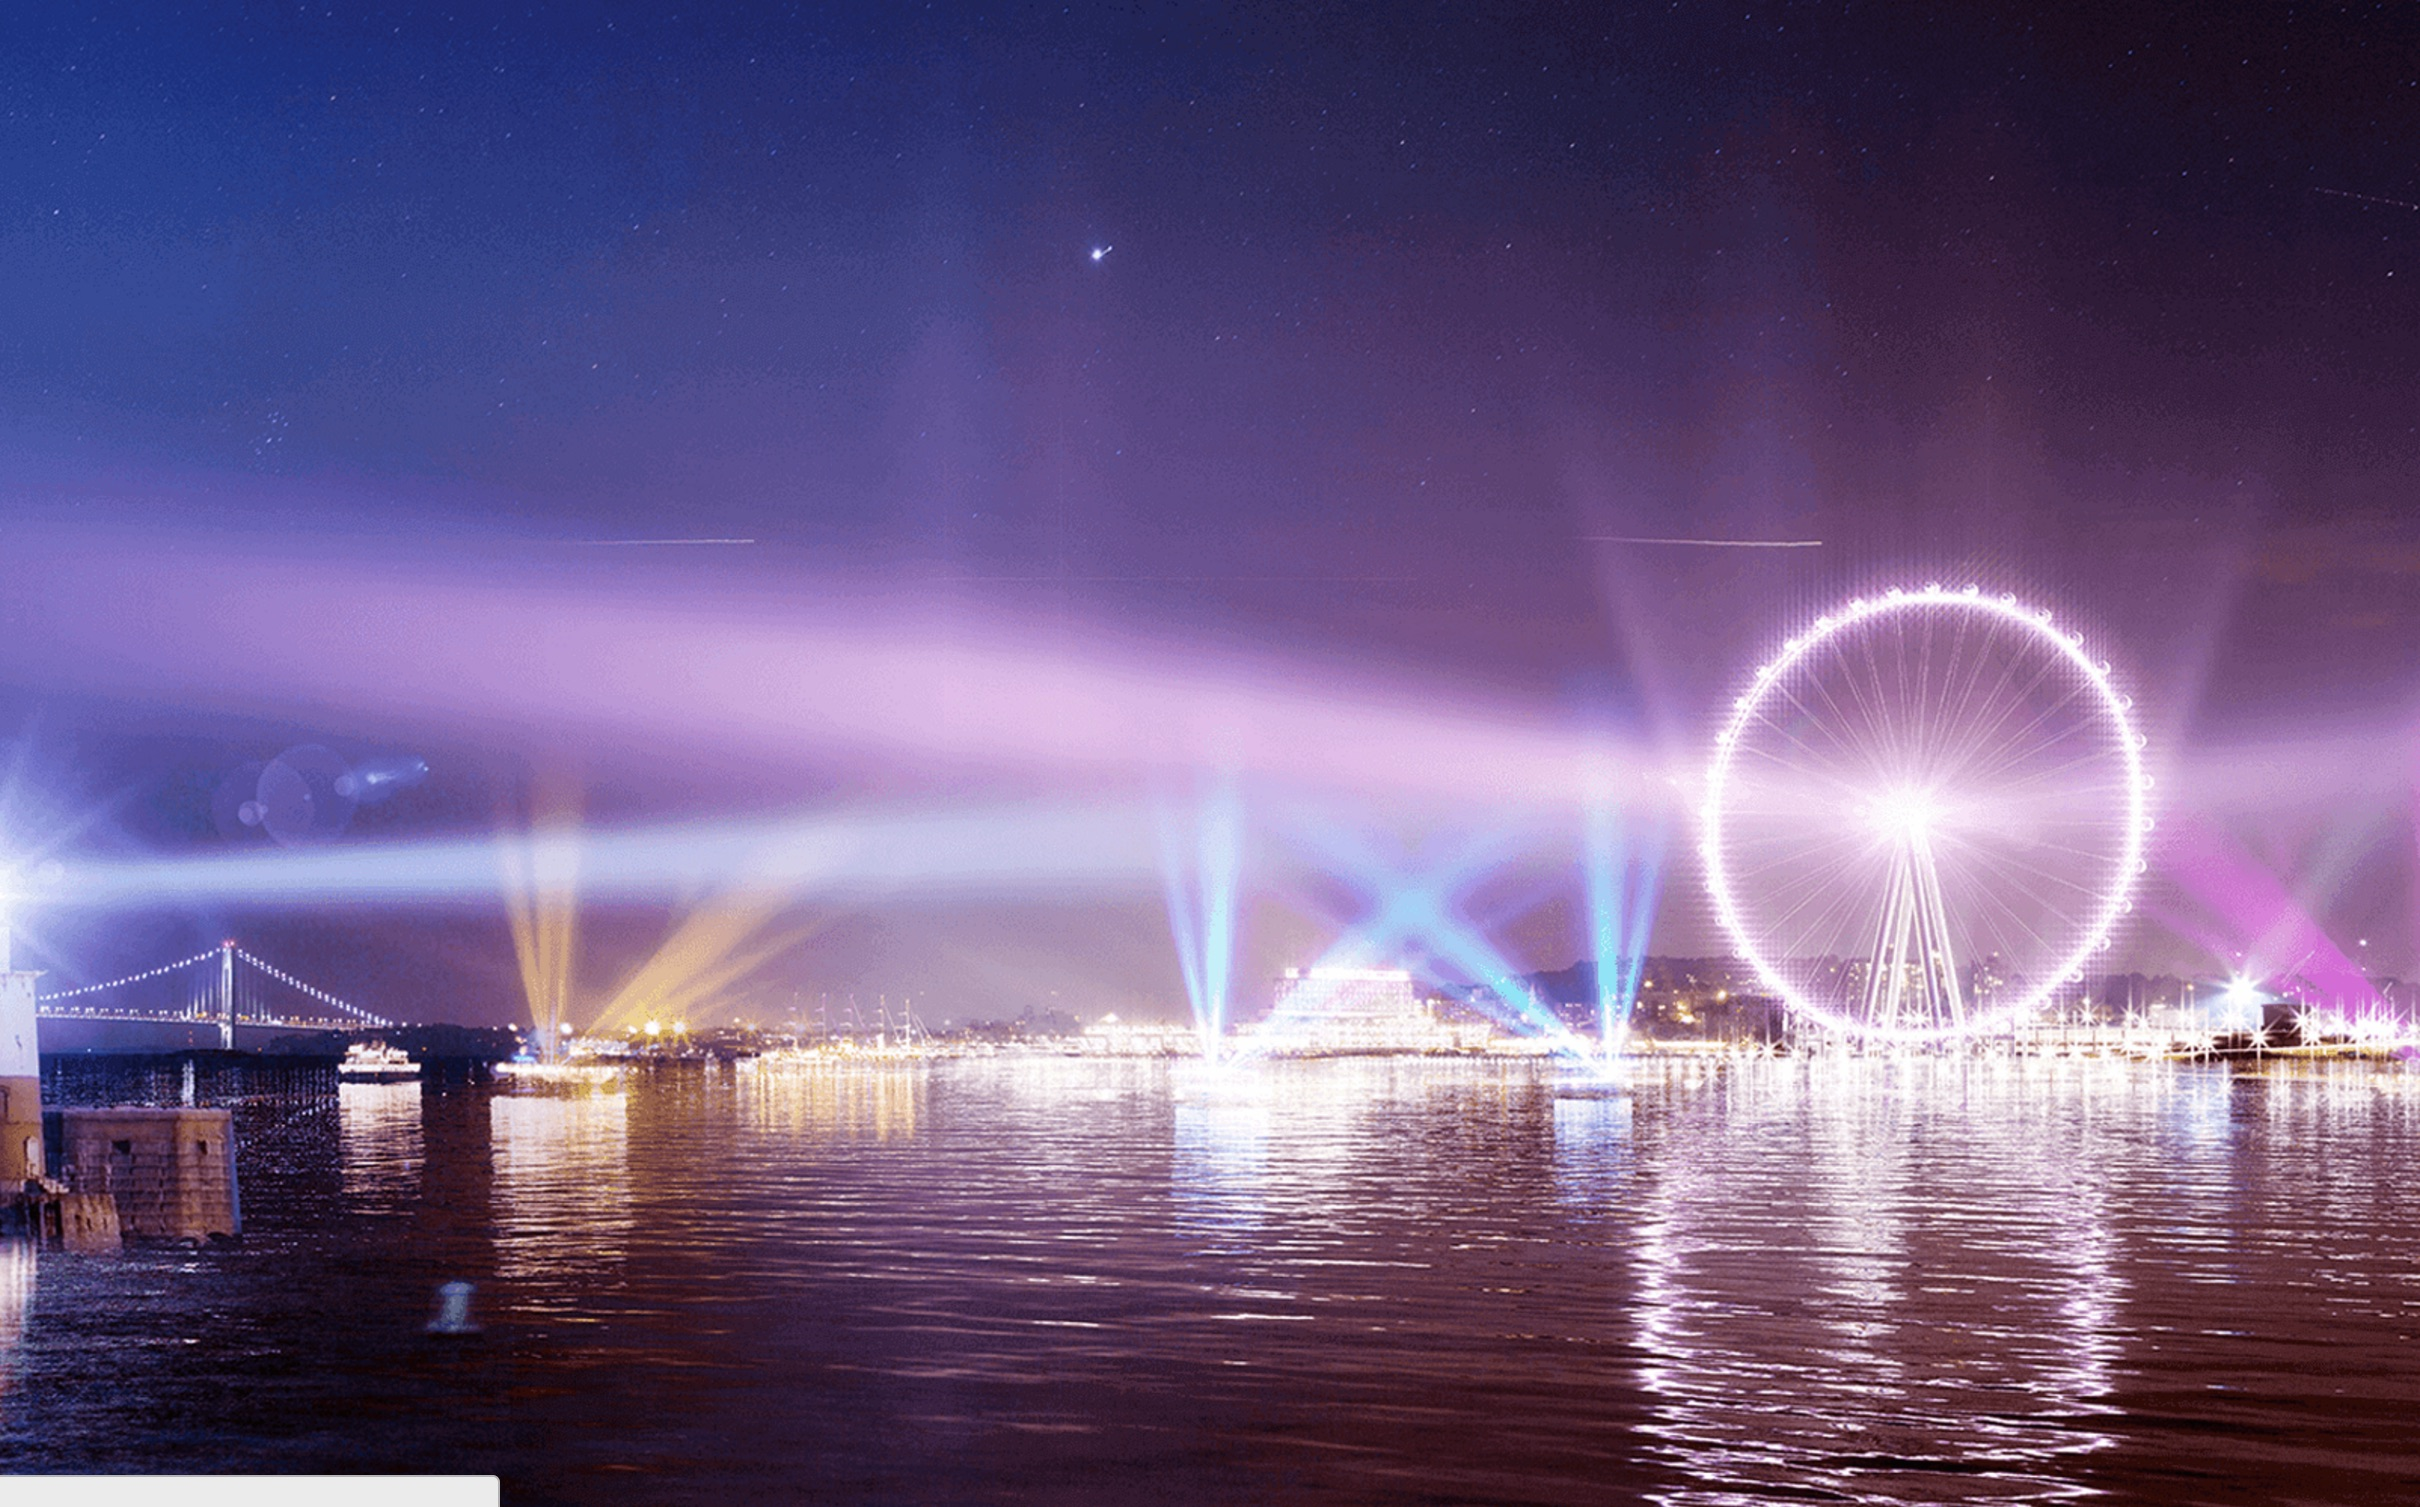 New York Wheel is equipped with $7 million of LED lightning, creating the most vibrant canvas on the New York skyline.